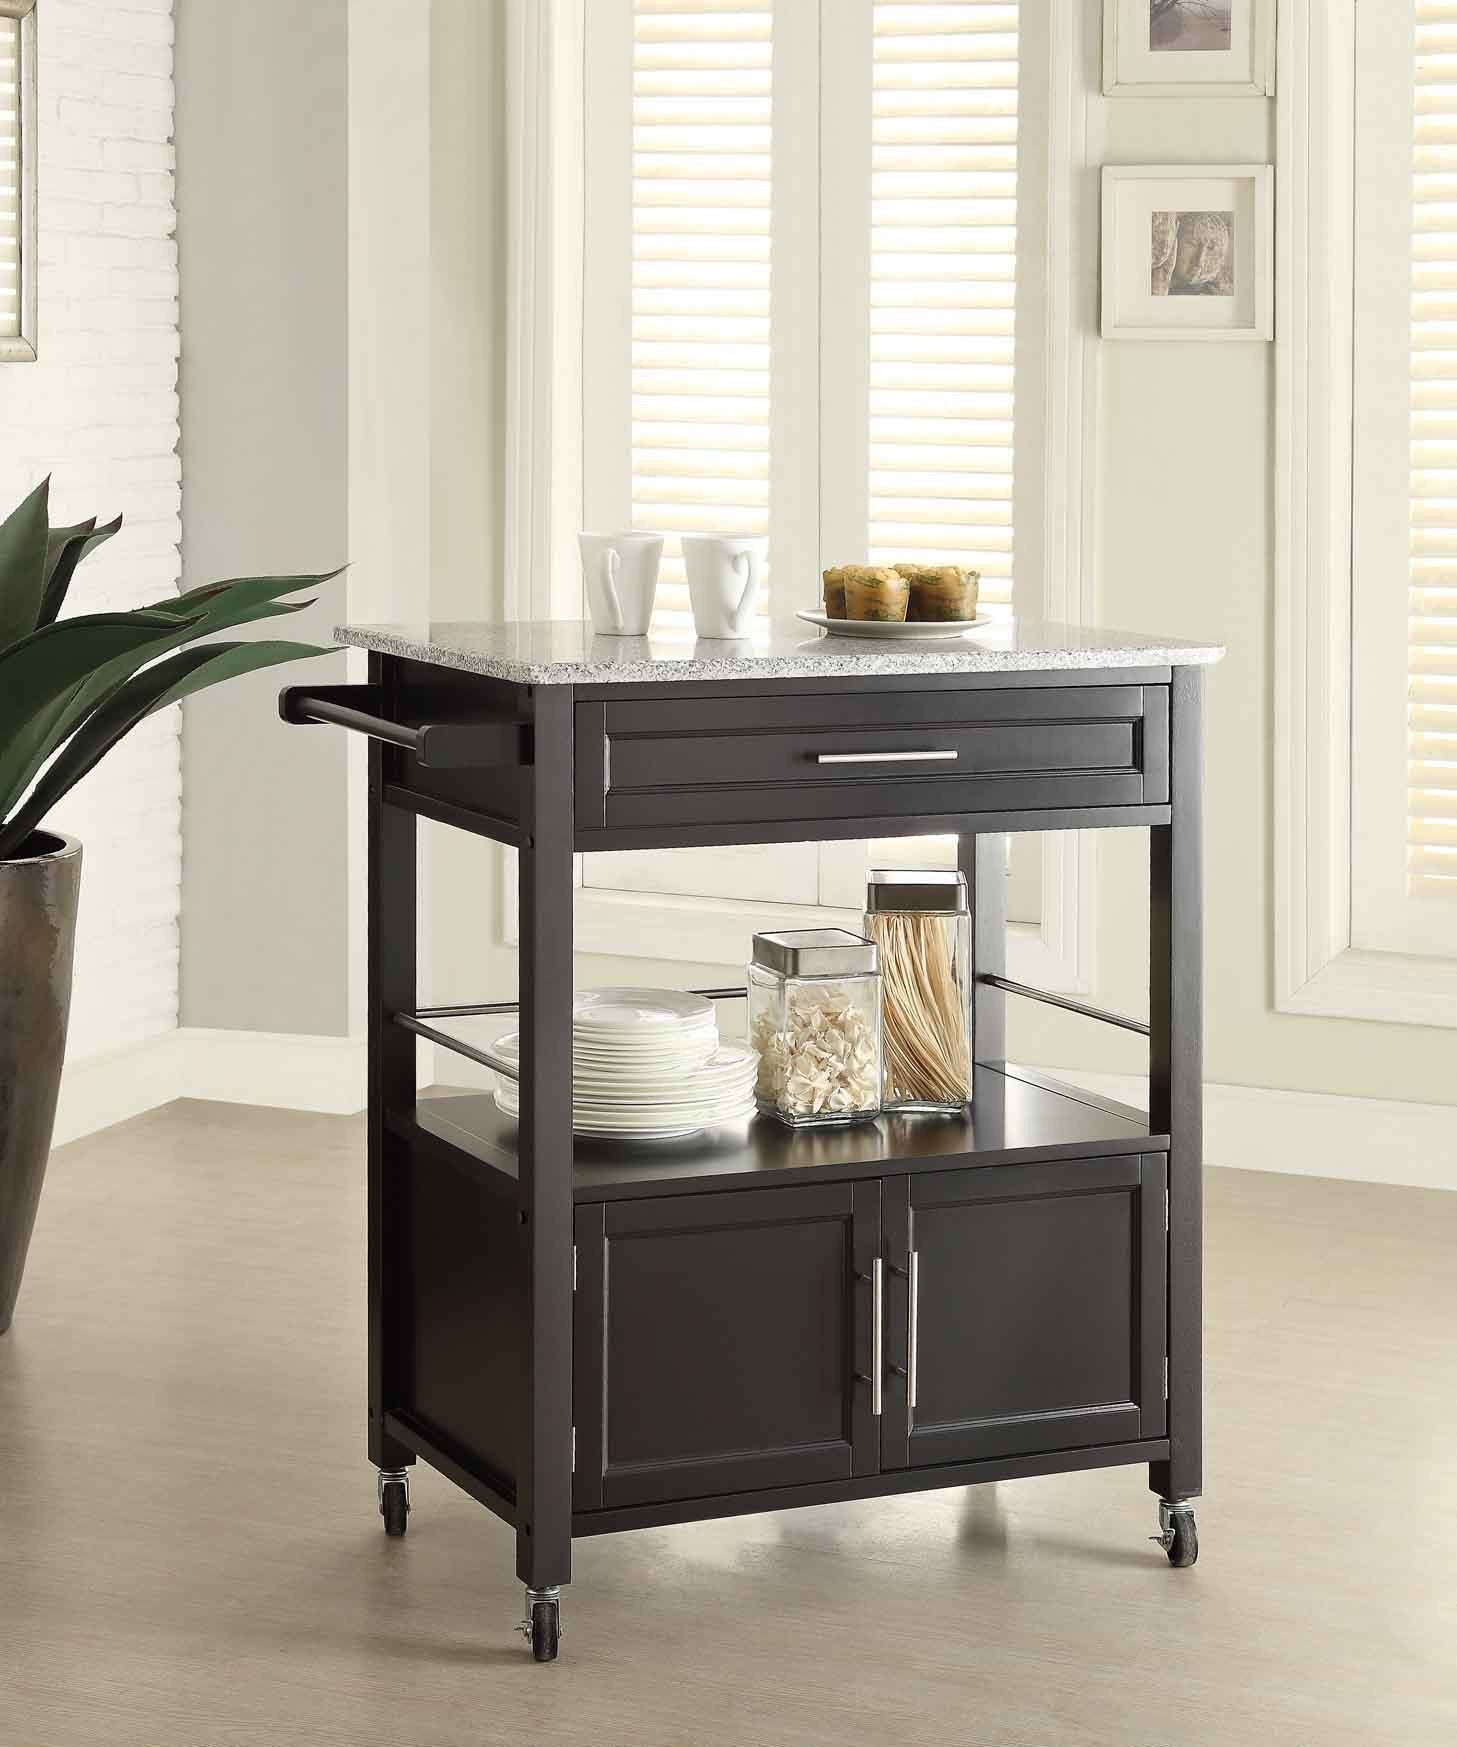 Black Cameron Kitchen Utility Cart with Granite Top